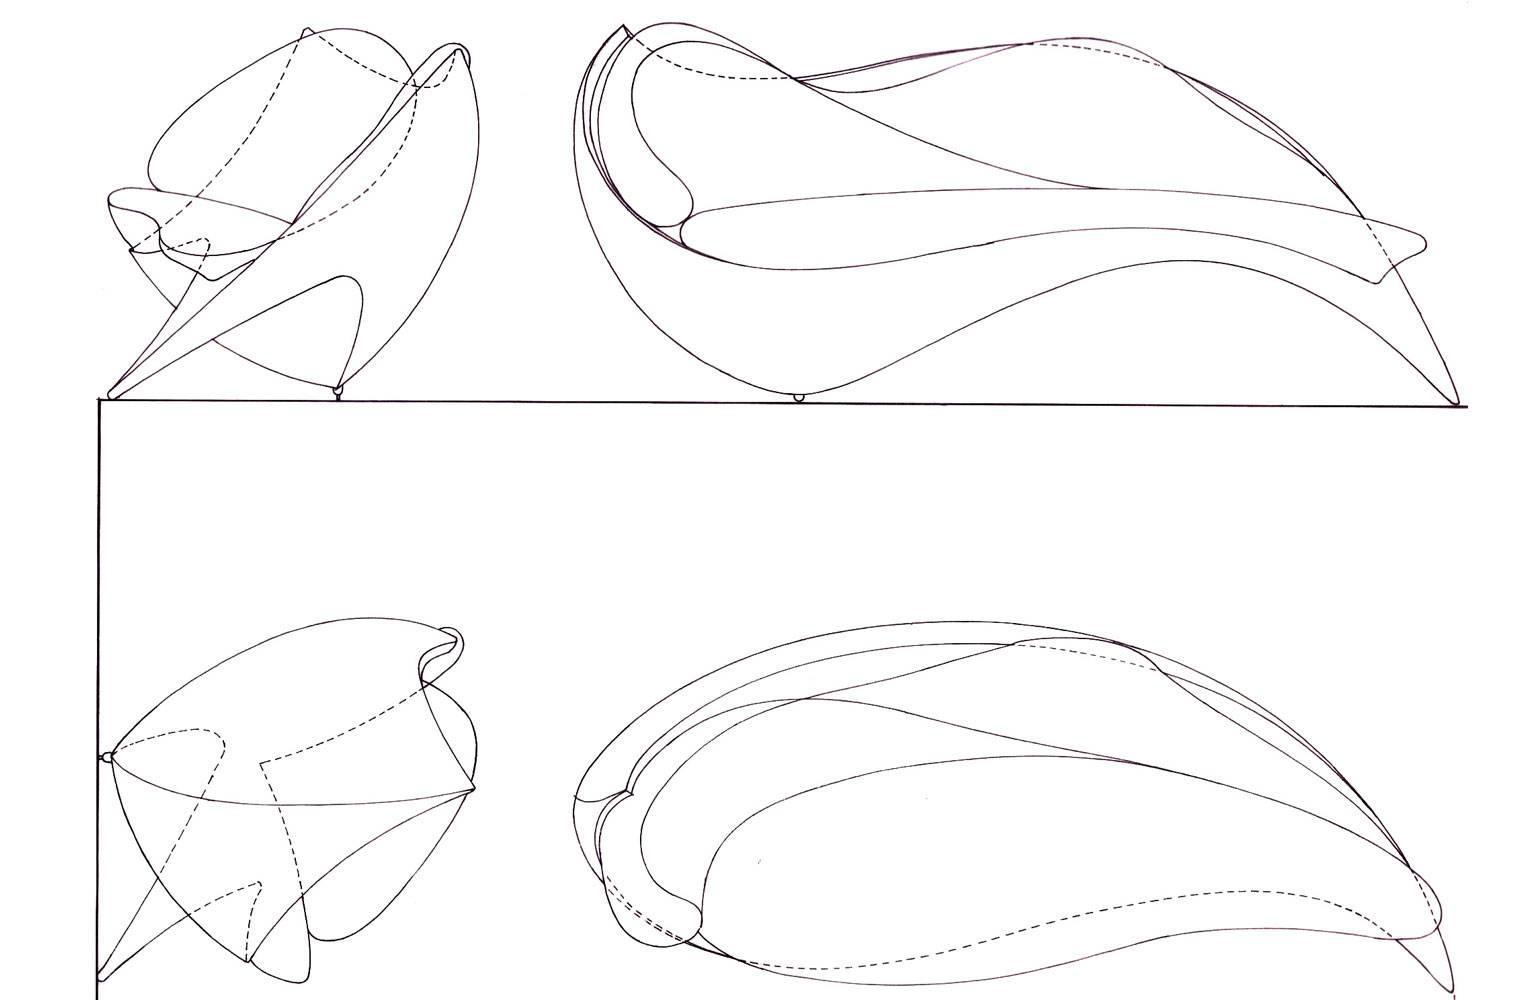 Whale Seat - Design Drawings